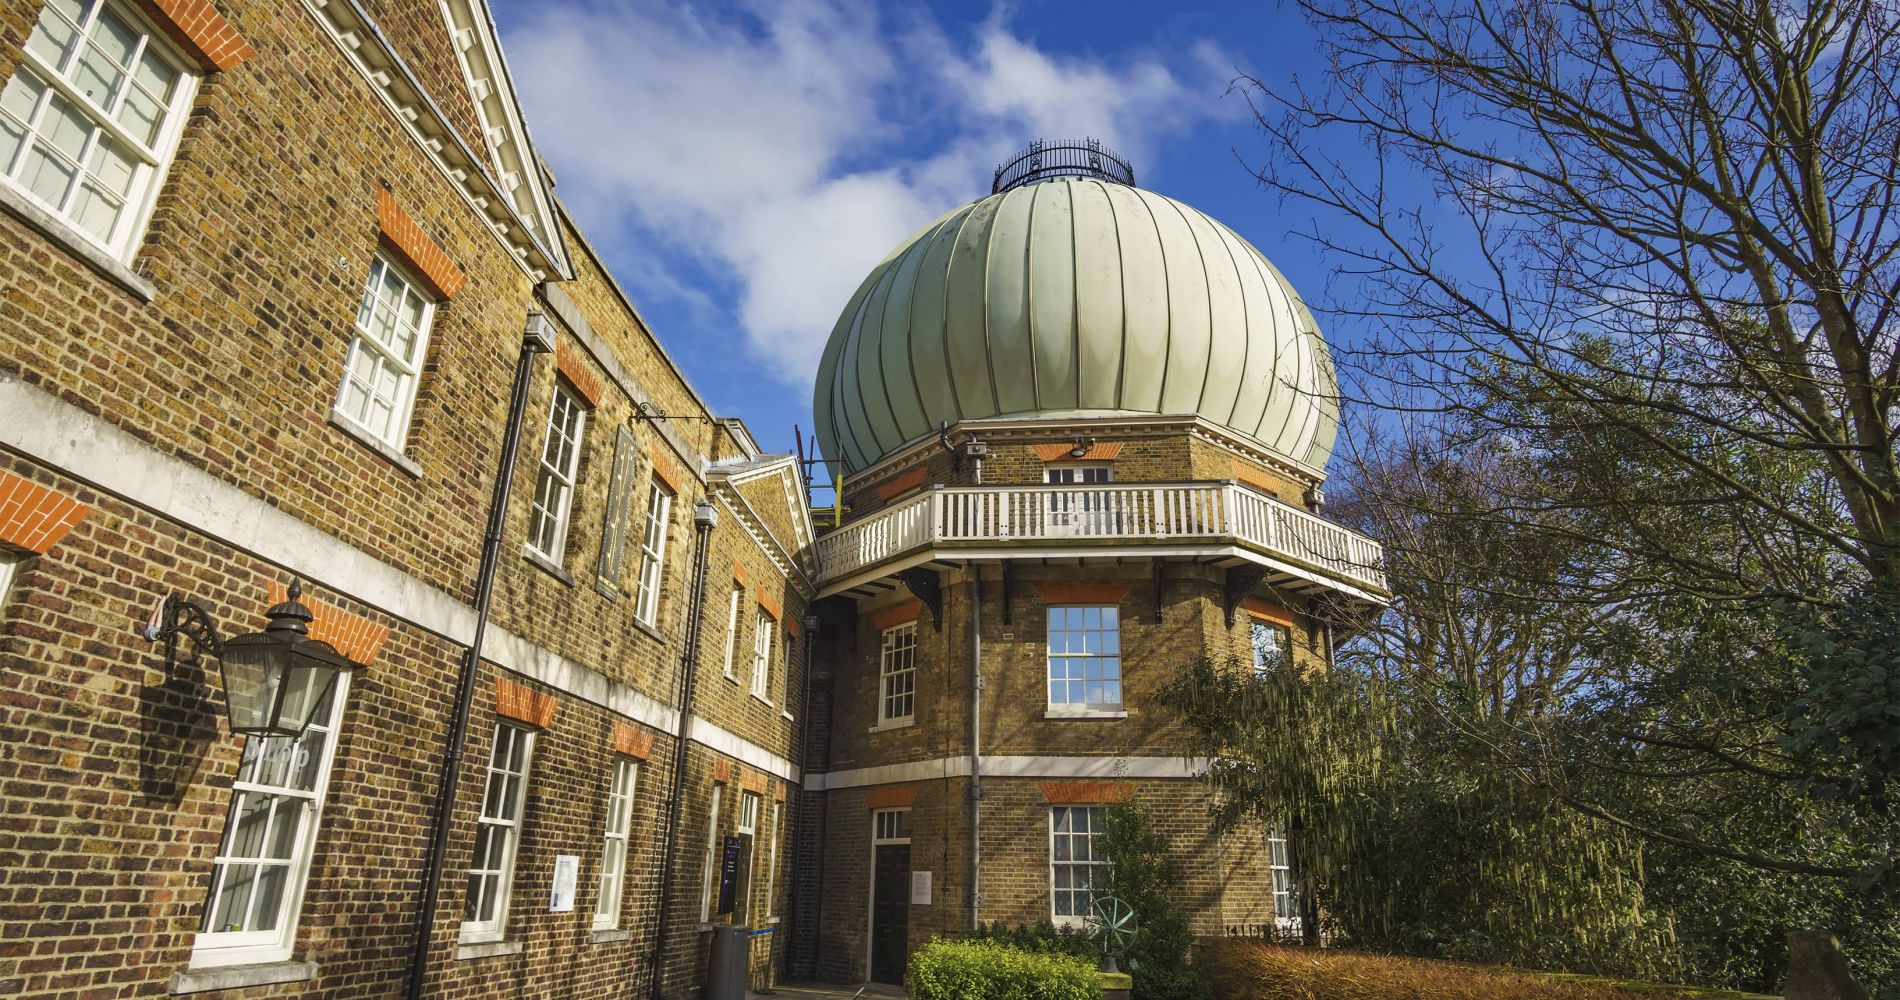 Visit London with Royal Observatory Greenwich for Two